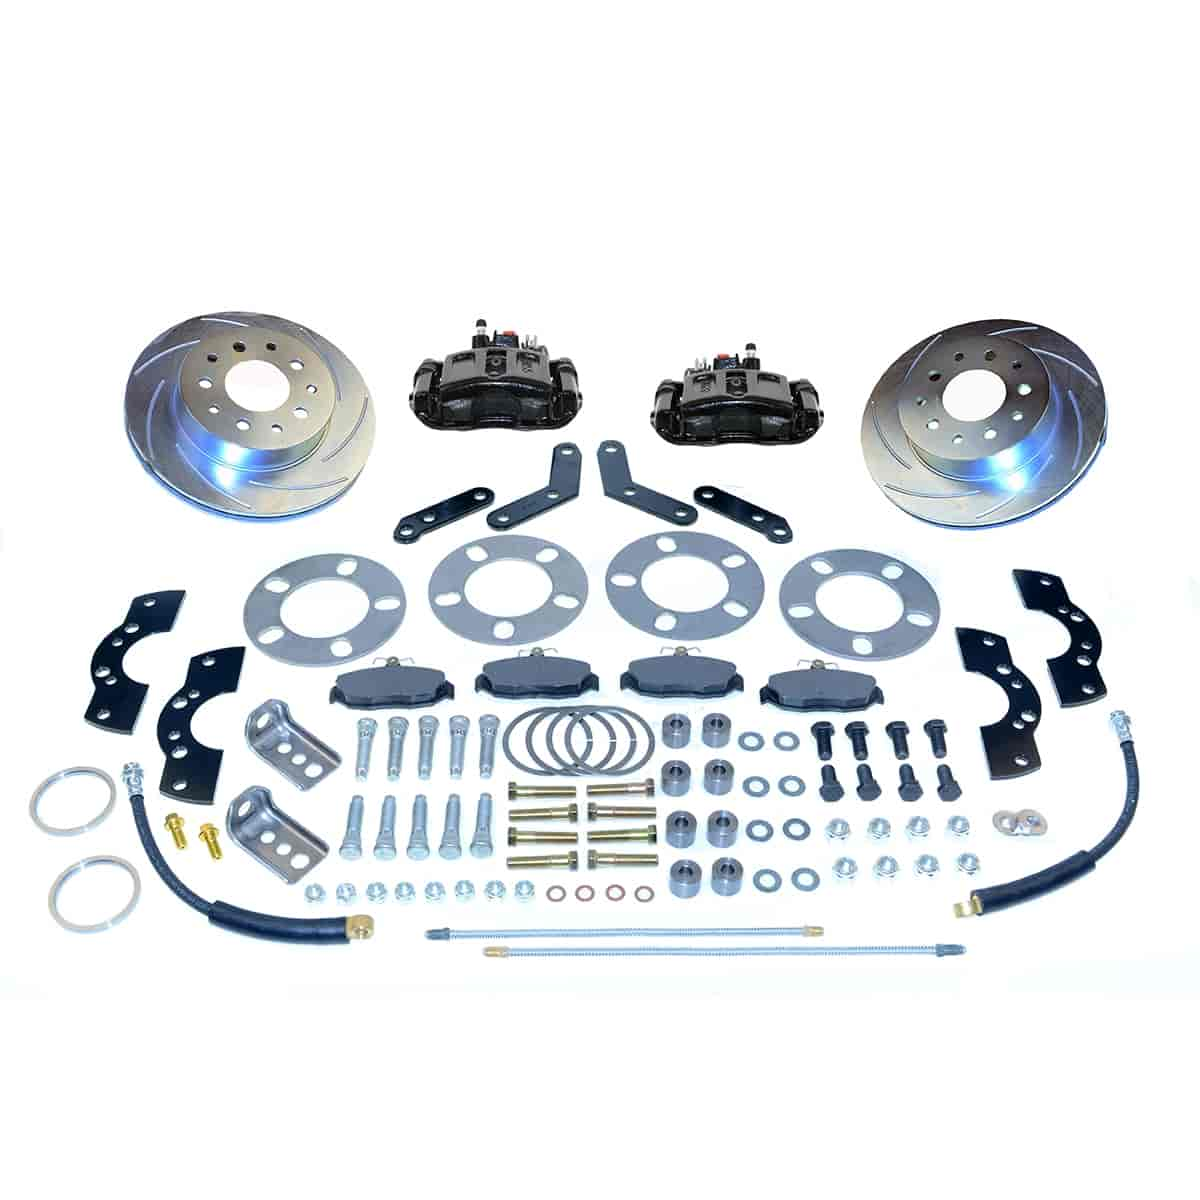 Stainless Steel Brakes A110-2BK - Stainless Steel Brakes Single Piston Rear Disc Brake Conversion Kit